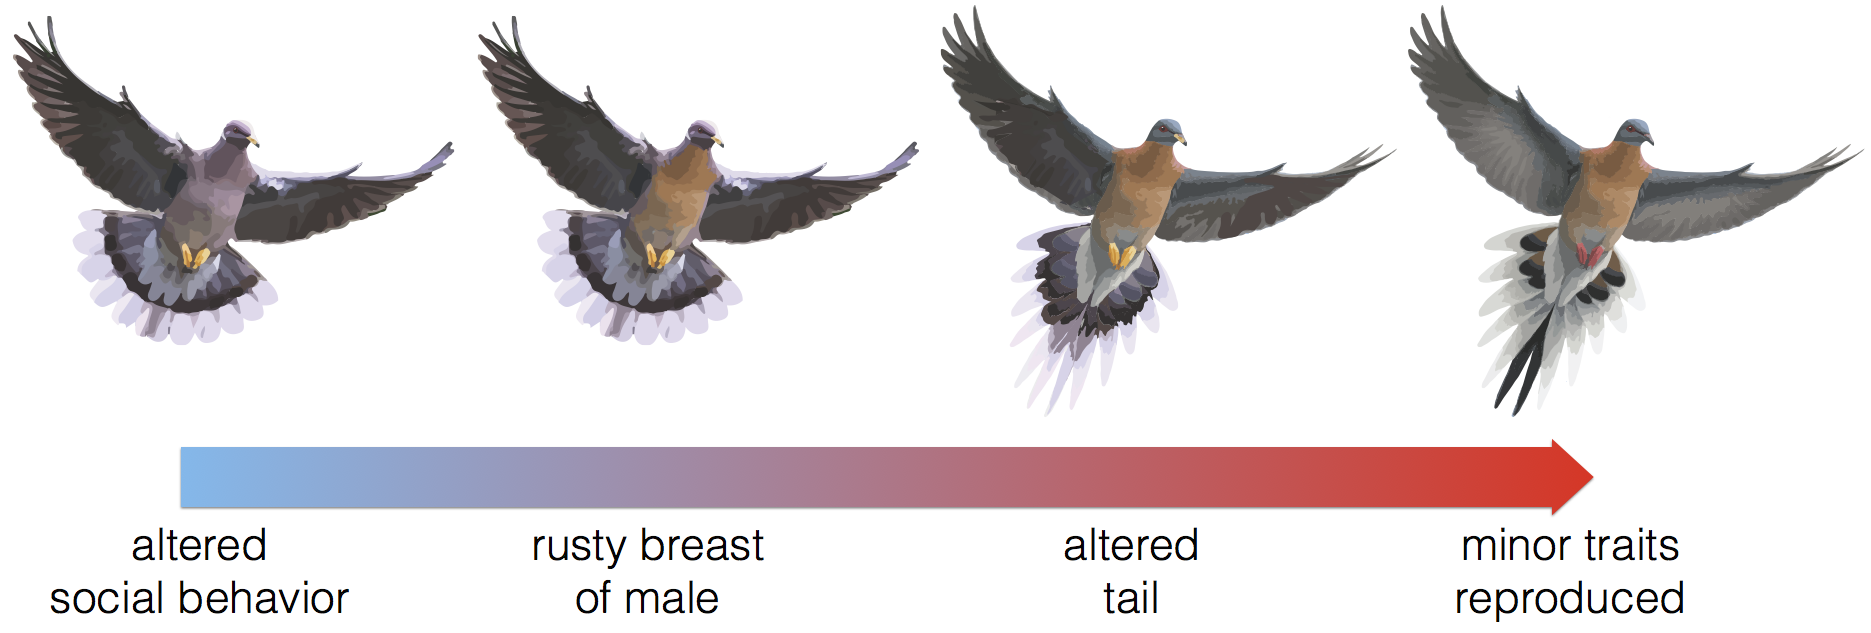 Passenger Pigeon Images Used In This Diagram Were Modified From Tim Houghu0027s  Original Artwork